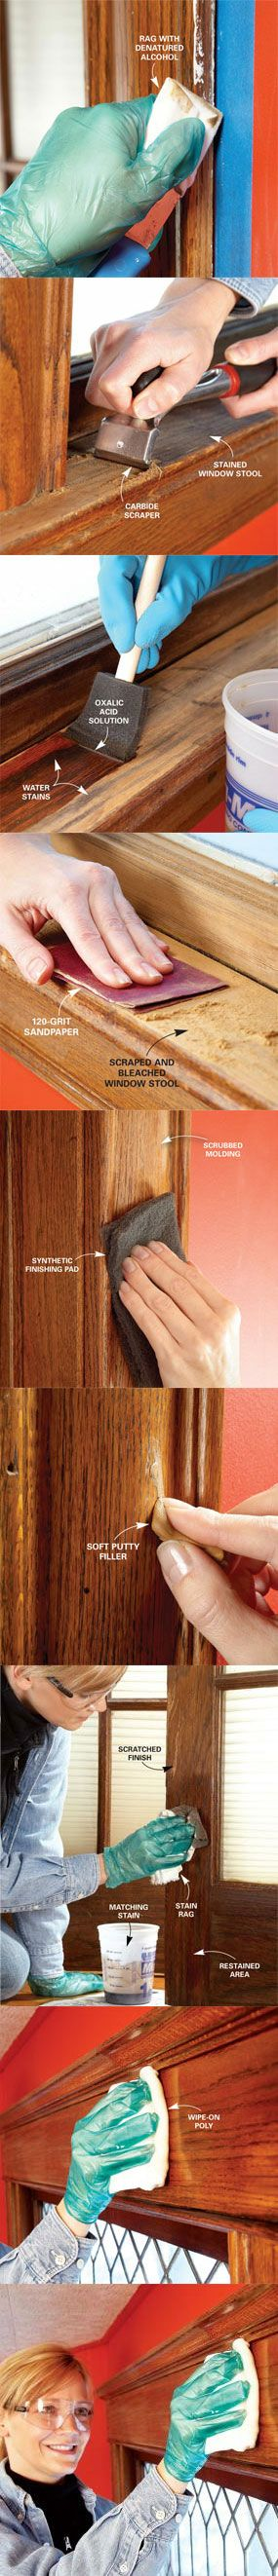 Learn how to revive trim at http://www.familyhandyman.com/DIY-Projects/Trim/DIY-Tips-On-Trim/trim-repair-how-to-fix-and-revive-trim/View-All #DIY #home-improvement #wood #projects